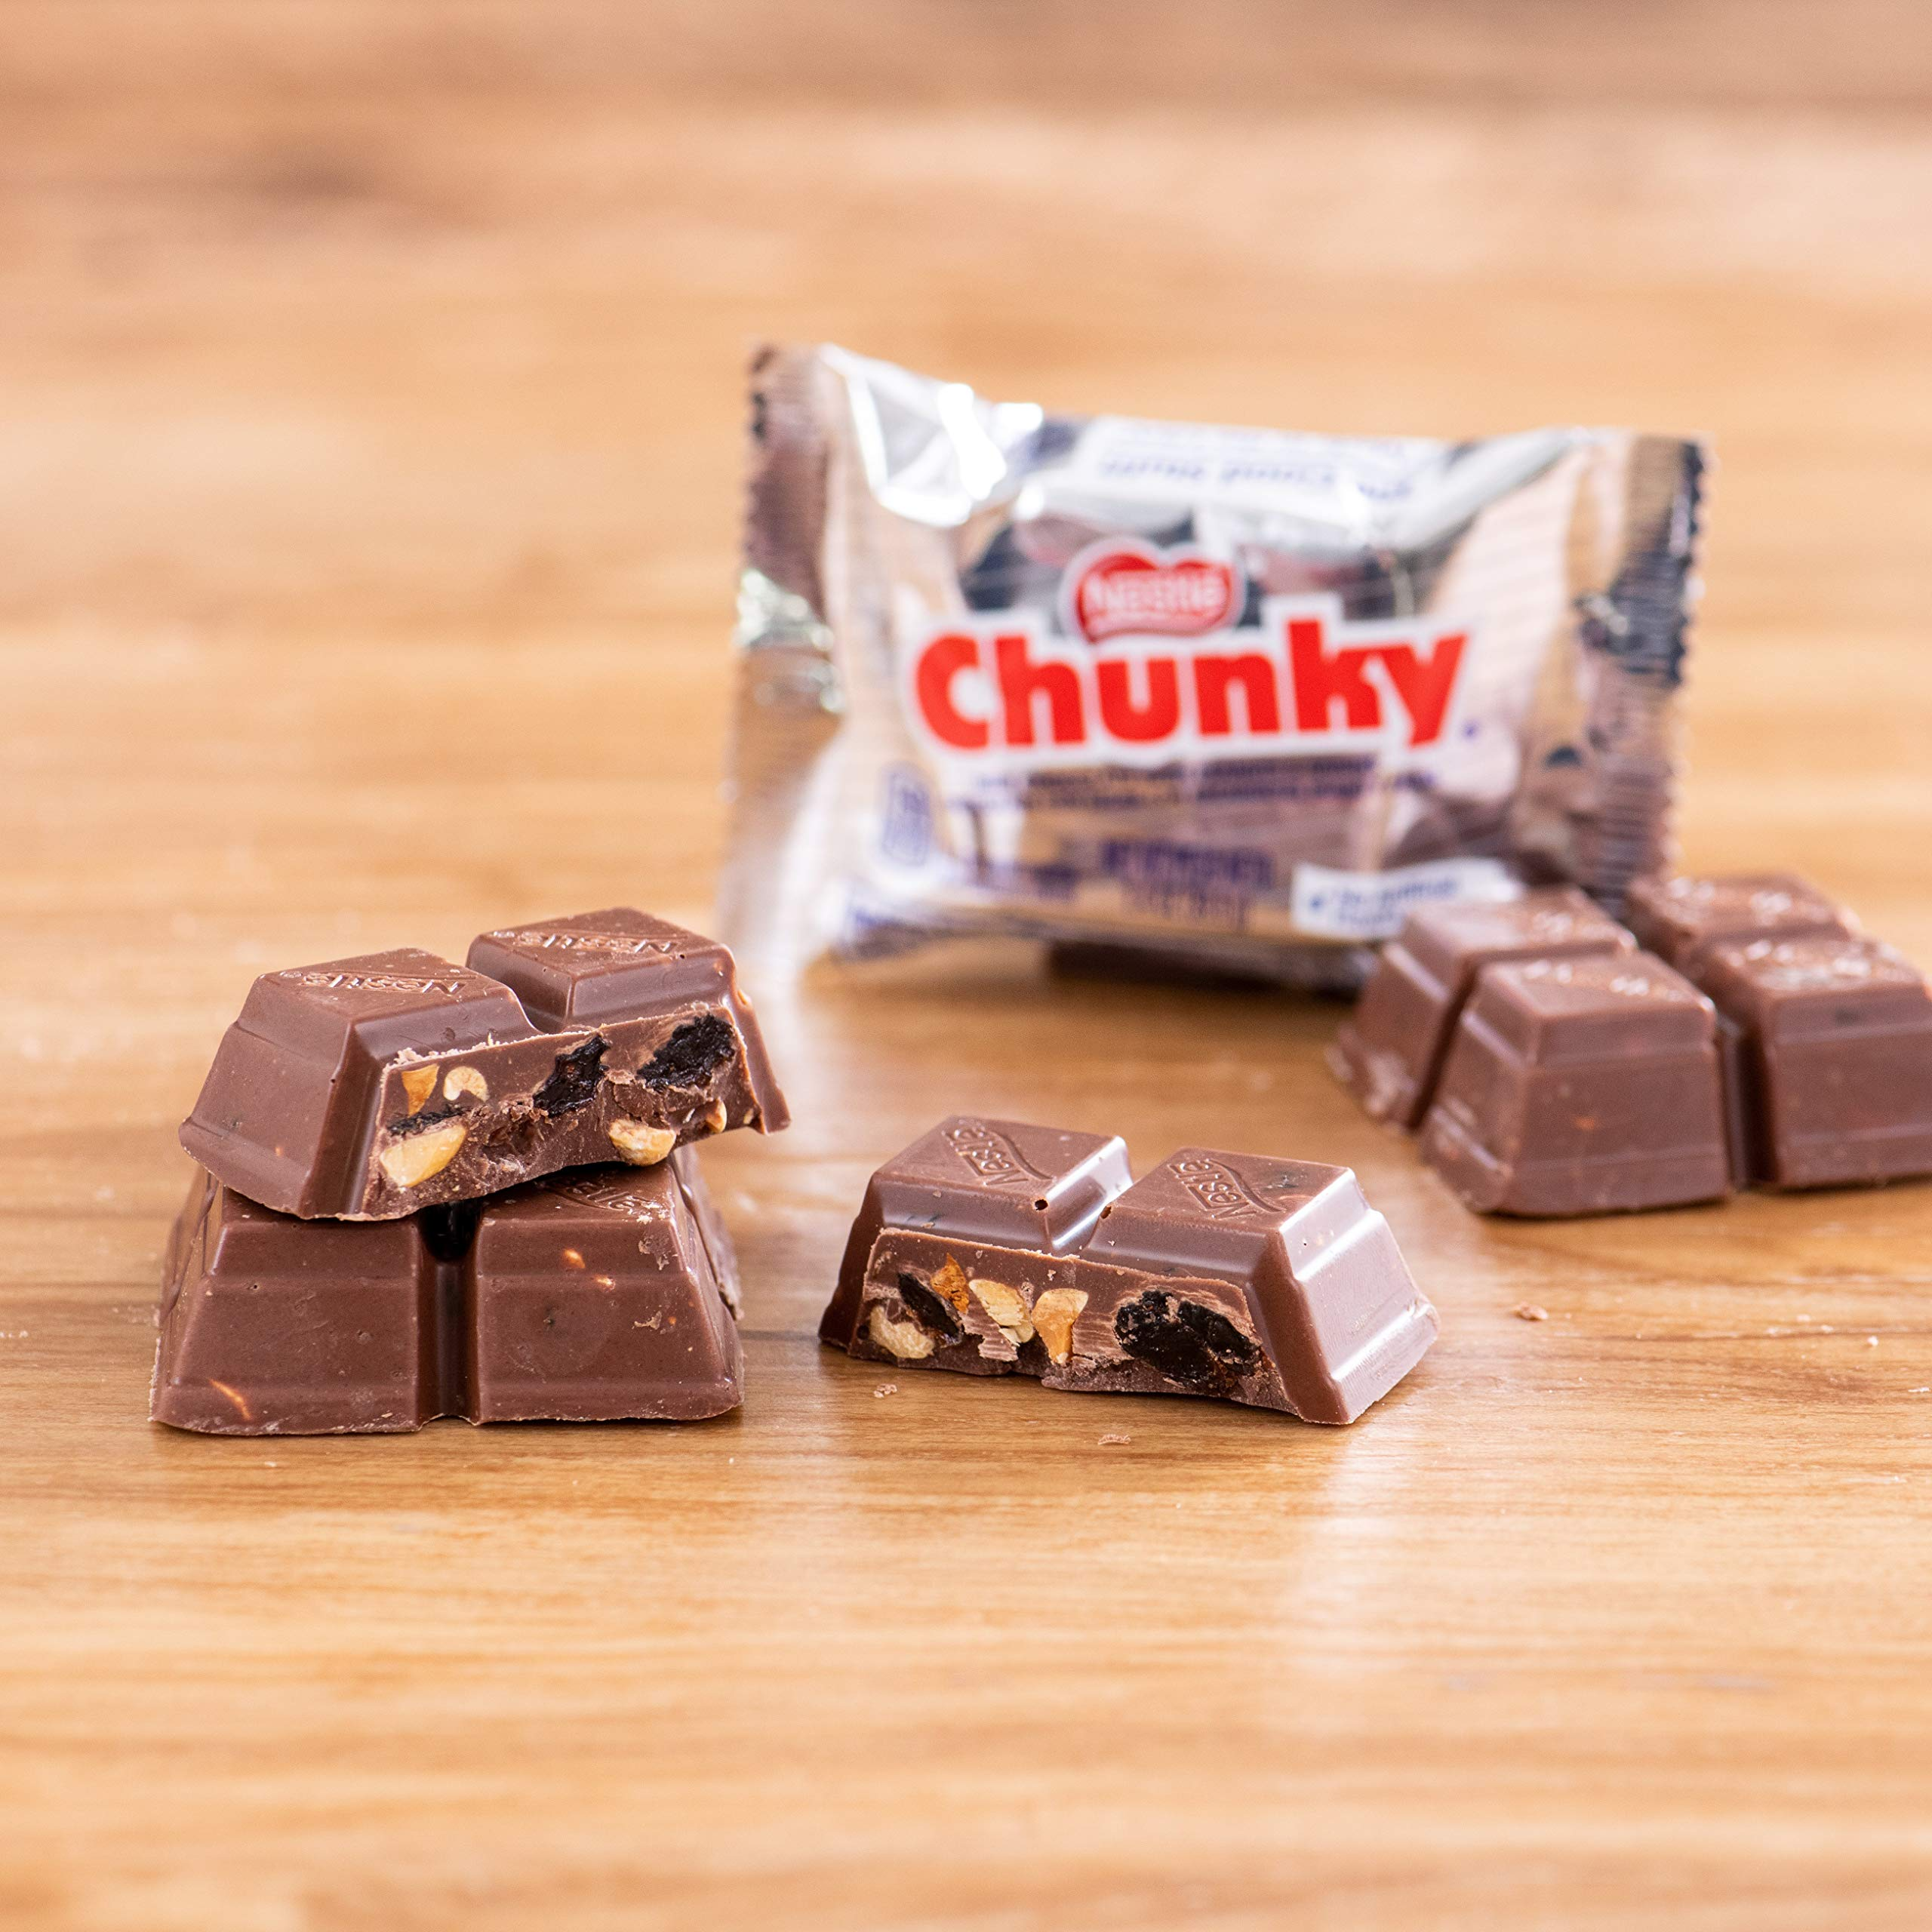 Nestle Chunky Chocolate Single Candy Bars, 1.4 Ounce (Pack of 24) by Chunky (Image #8)